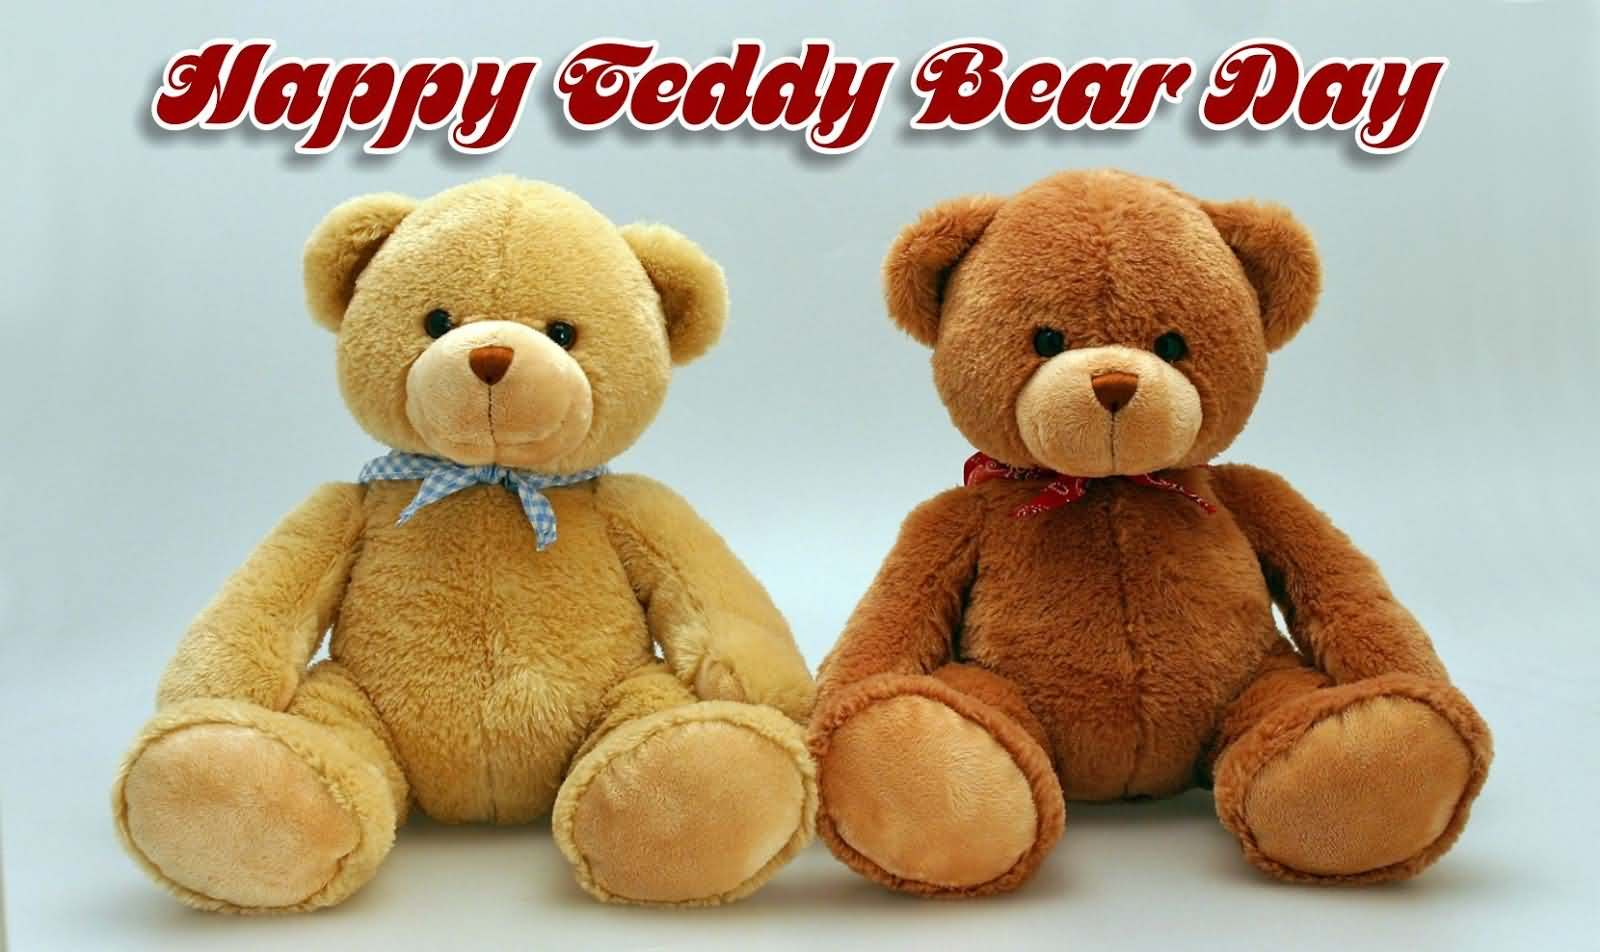 Happy Teddy Bear Day Two Cute Bears Wallpaper